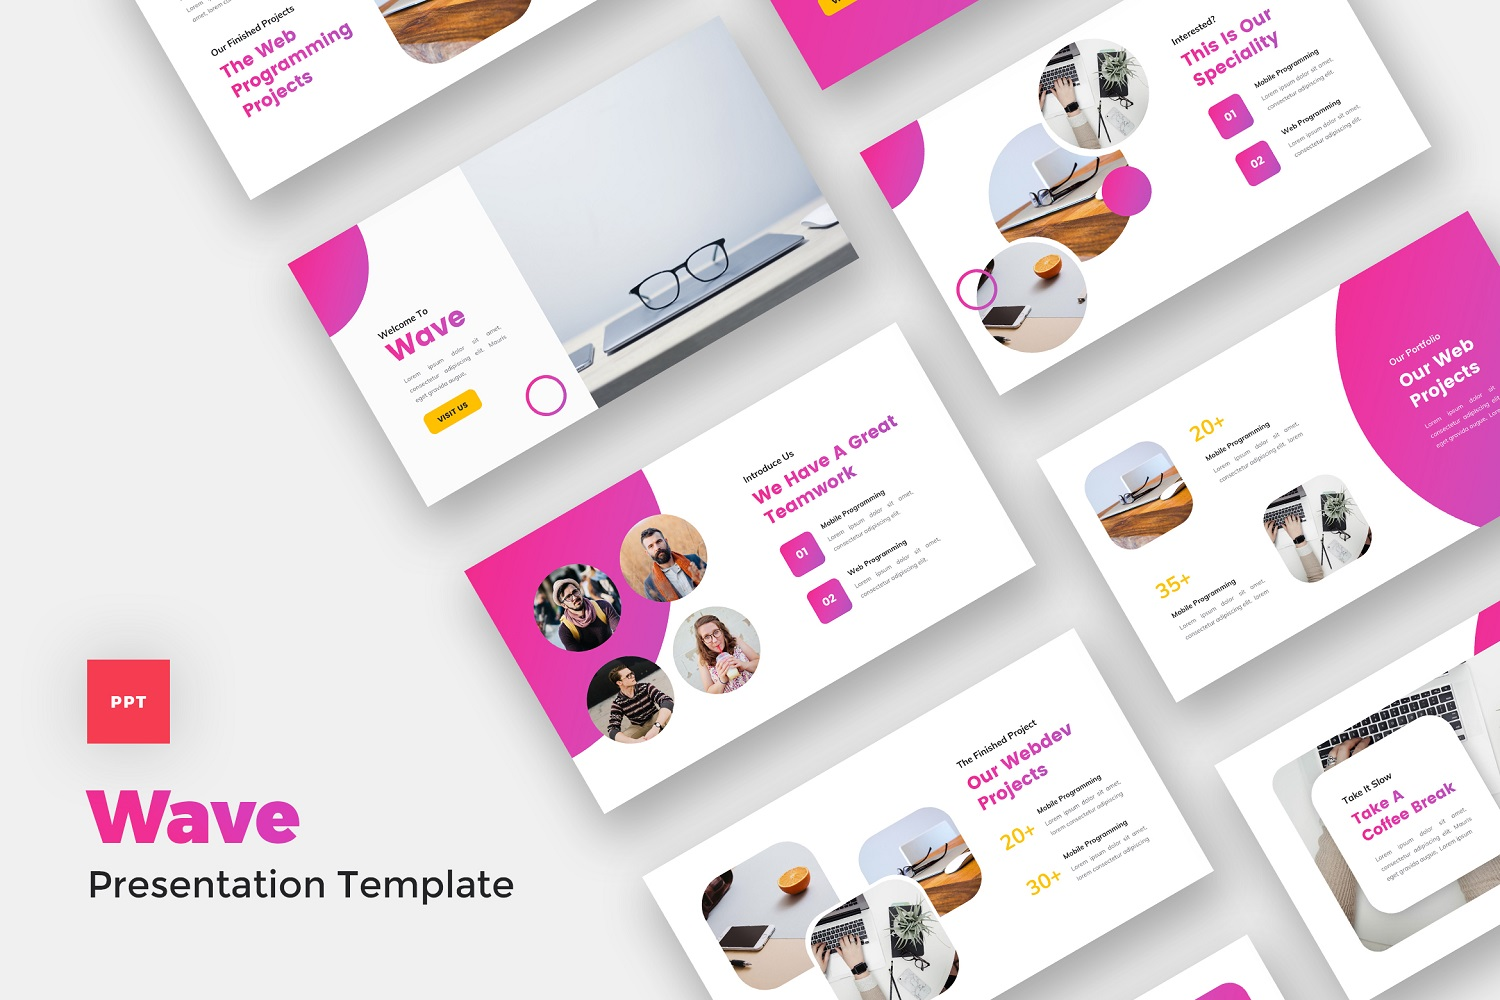 Wave - IT Solutions & Services PowerPoint Template